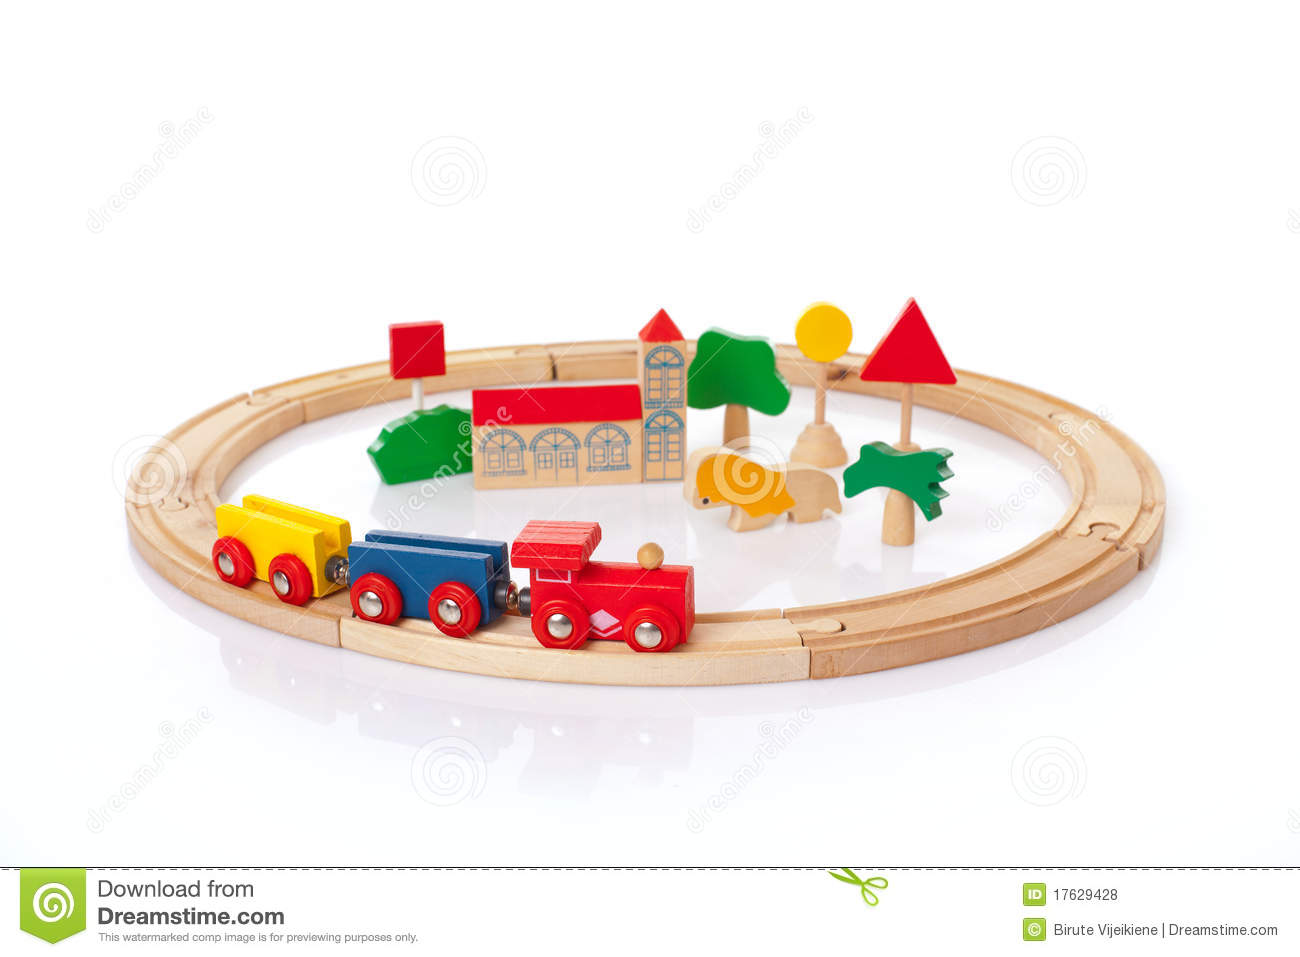 Wooden toy train on the white background.